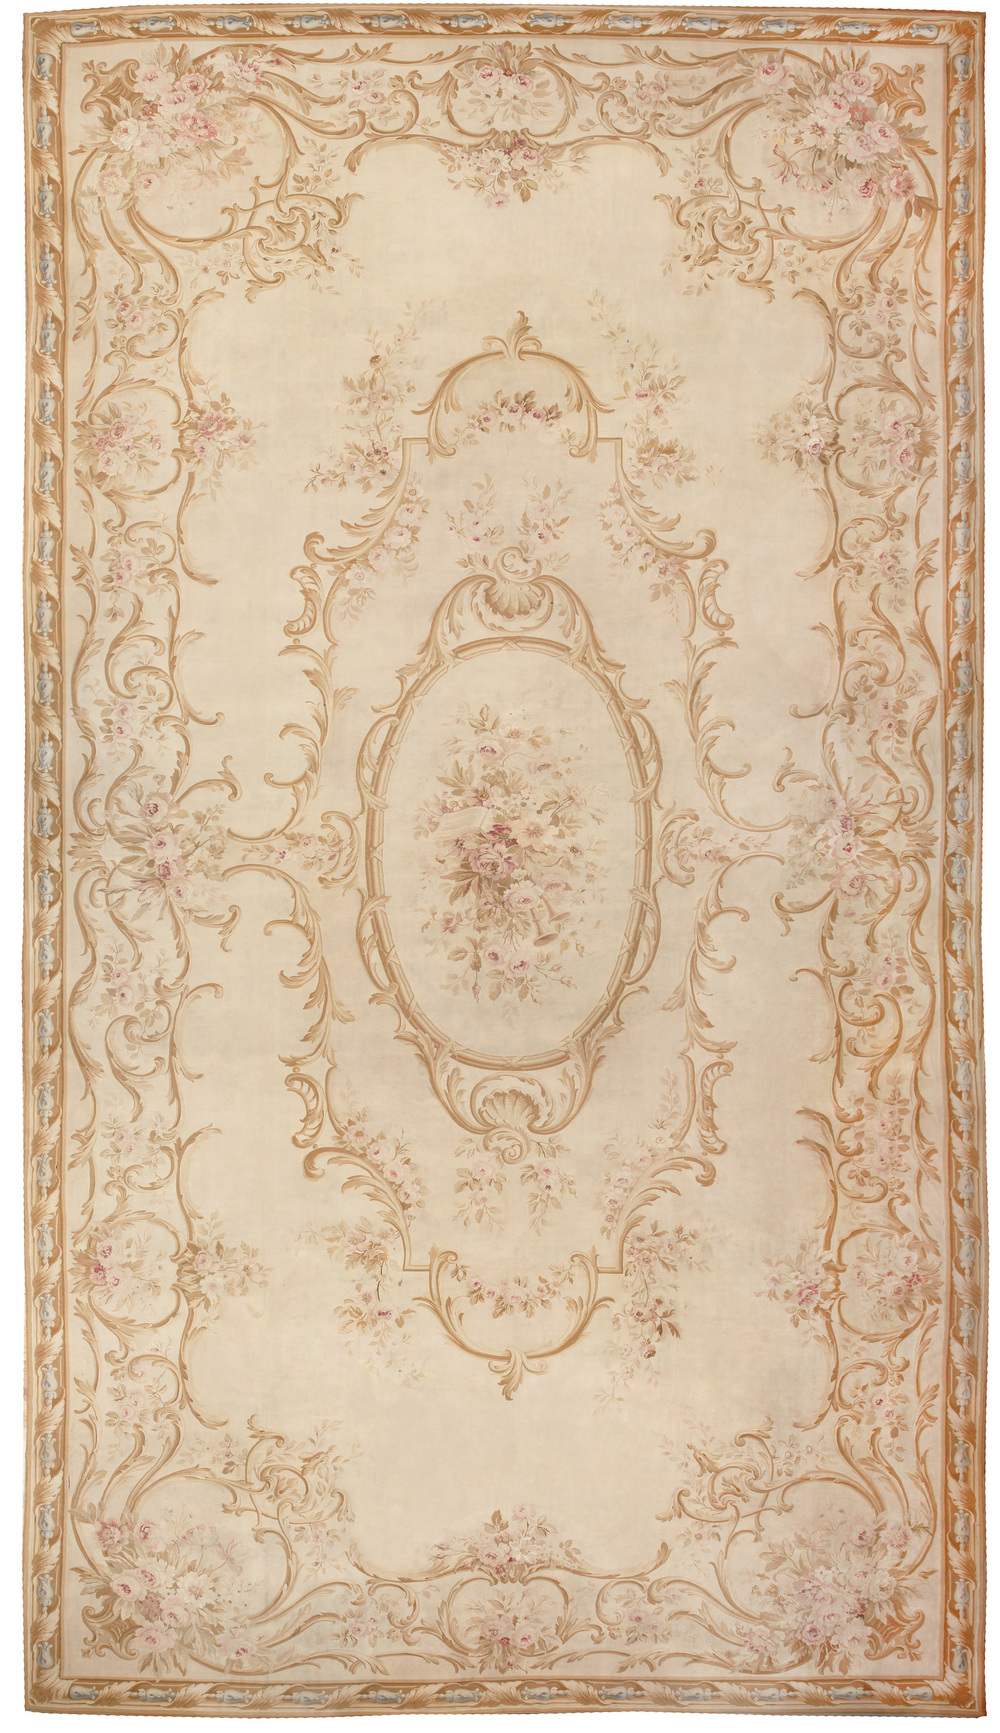 https://nazmiyalantiquerugs.com/antique/french/aubusson/antique-french-aubusson-carpet-46451/